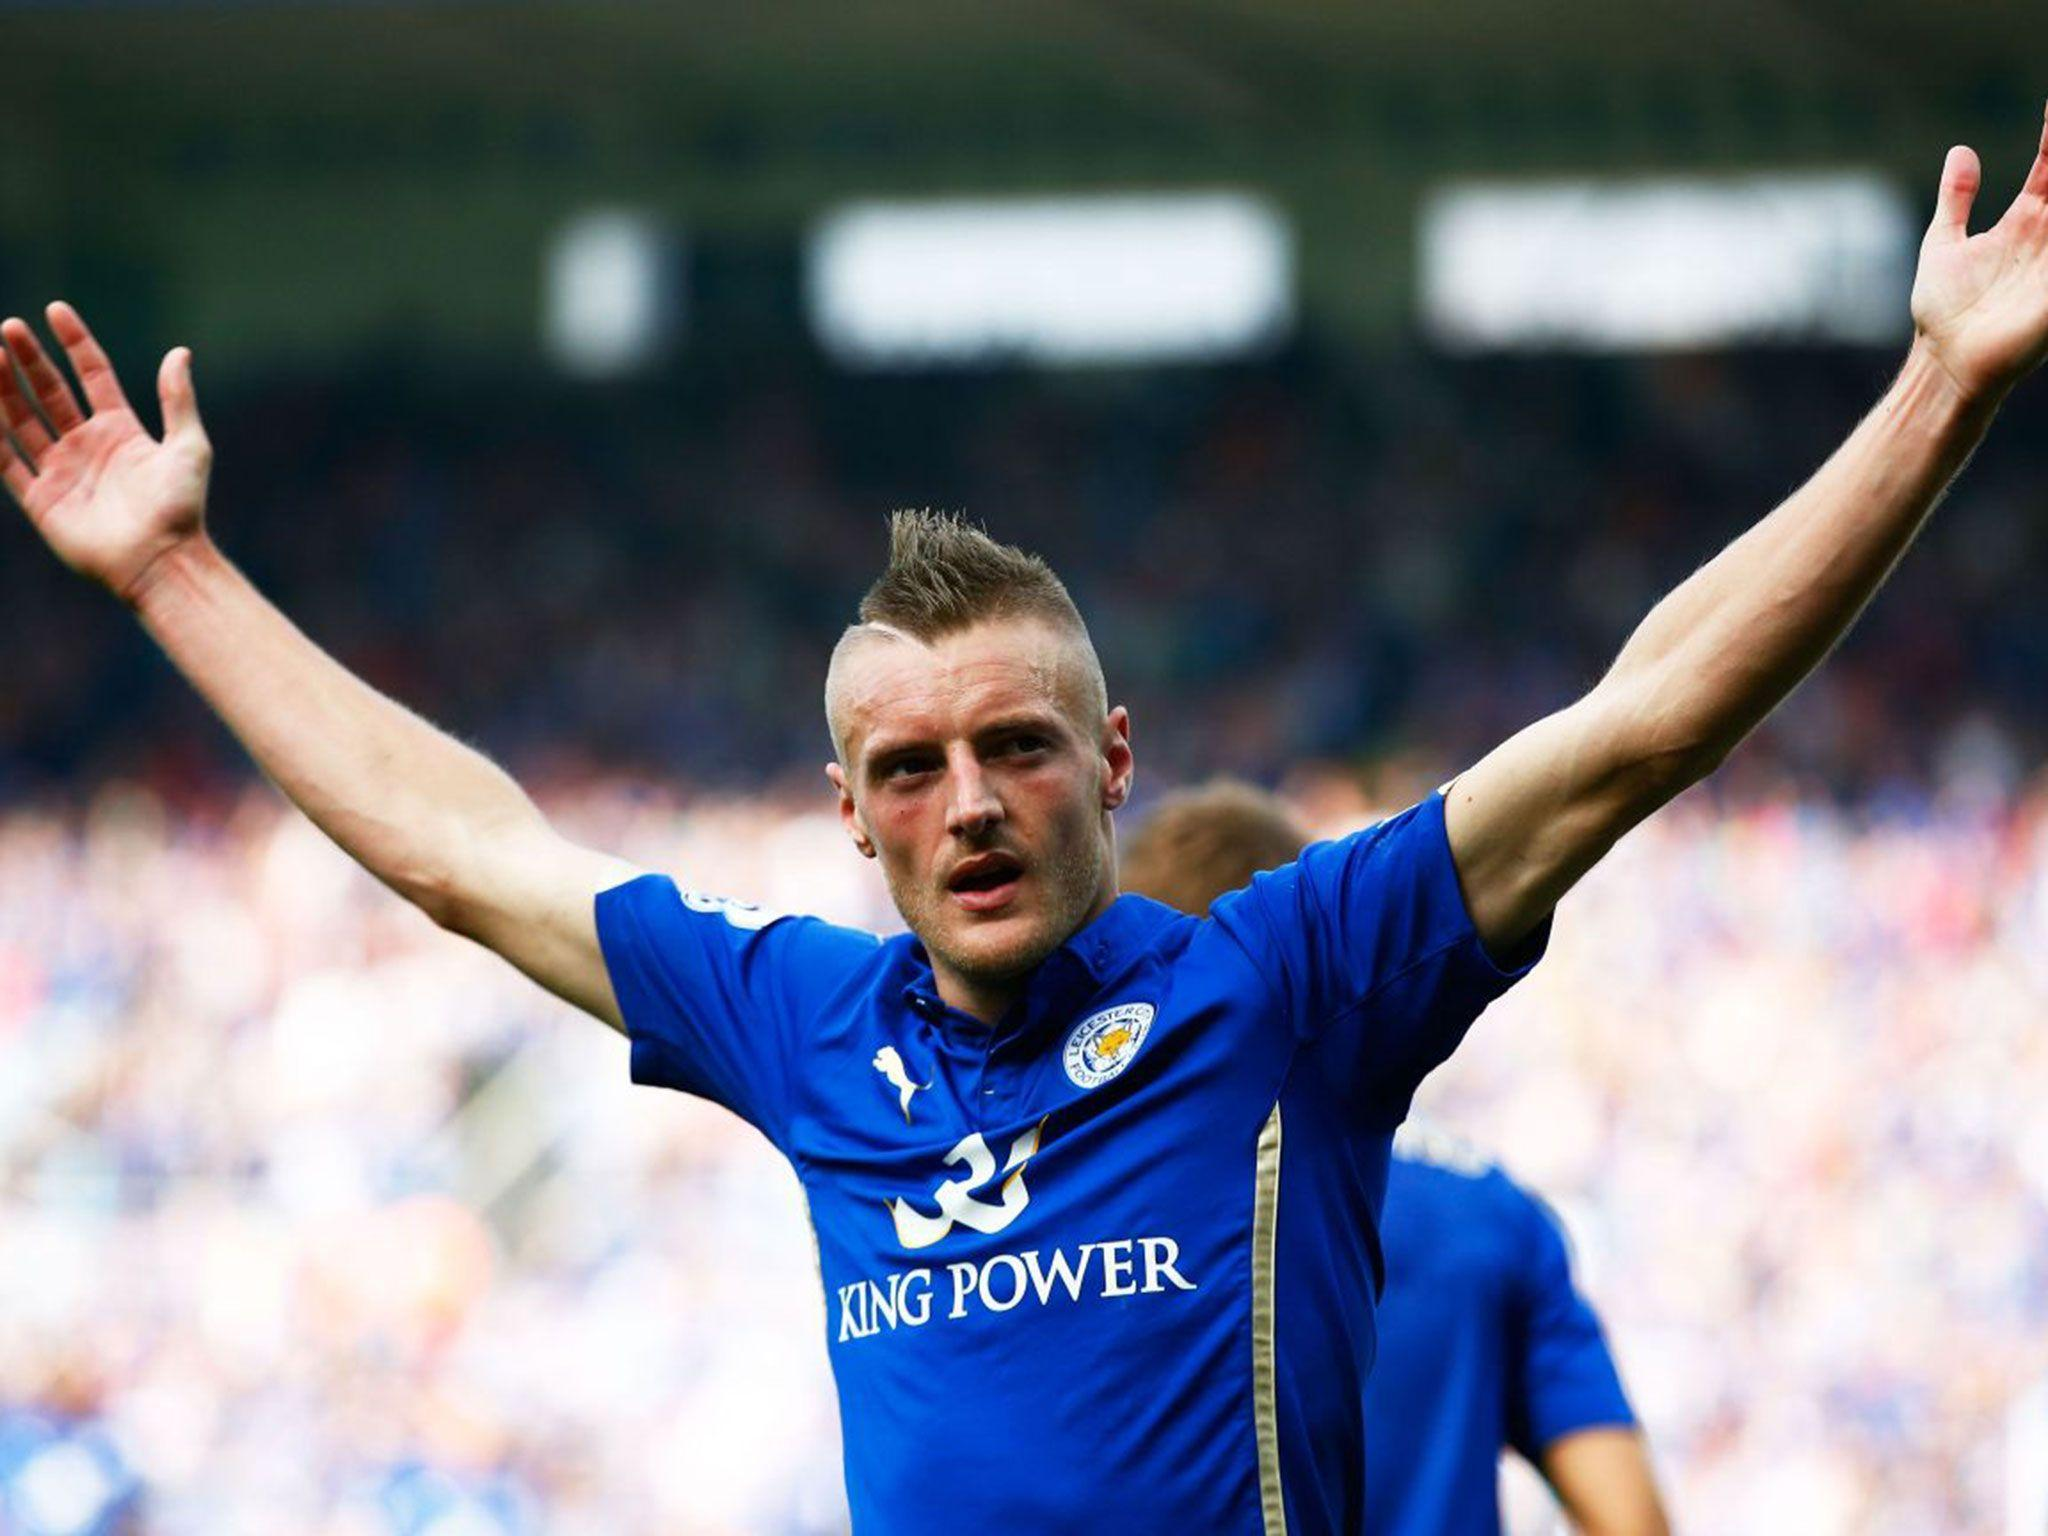 Late developer Jamie Vardy revels in a true rags to riches tale ...